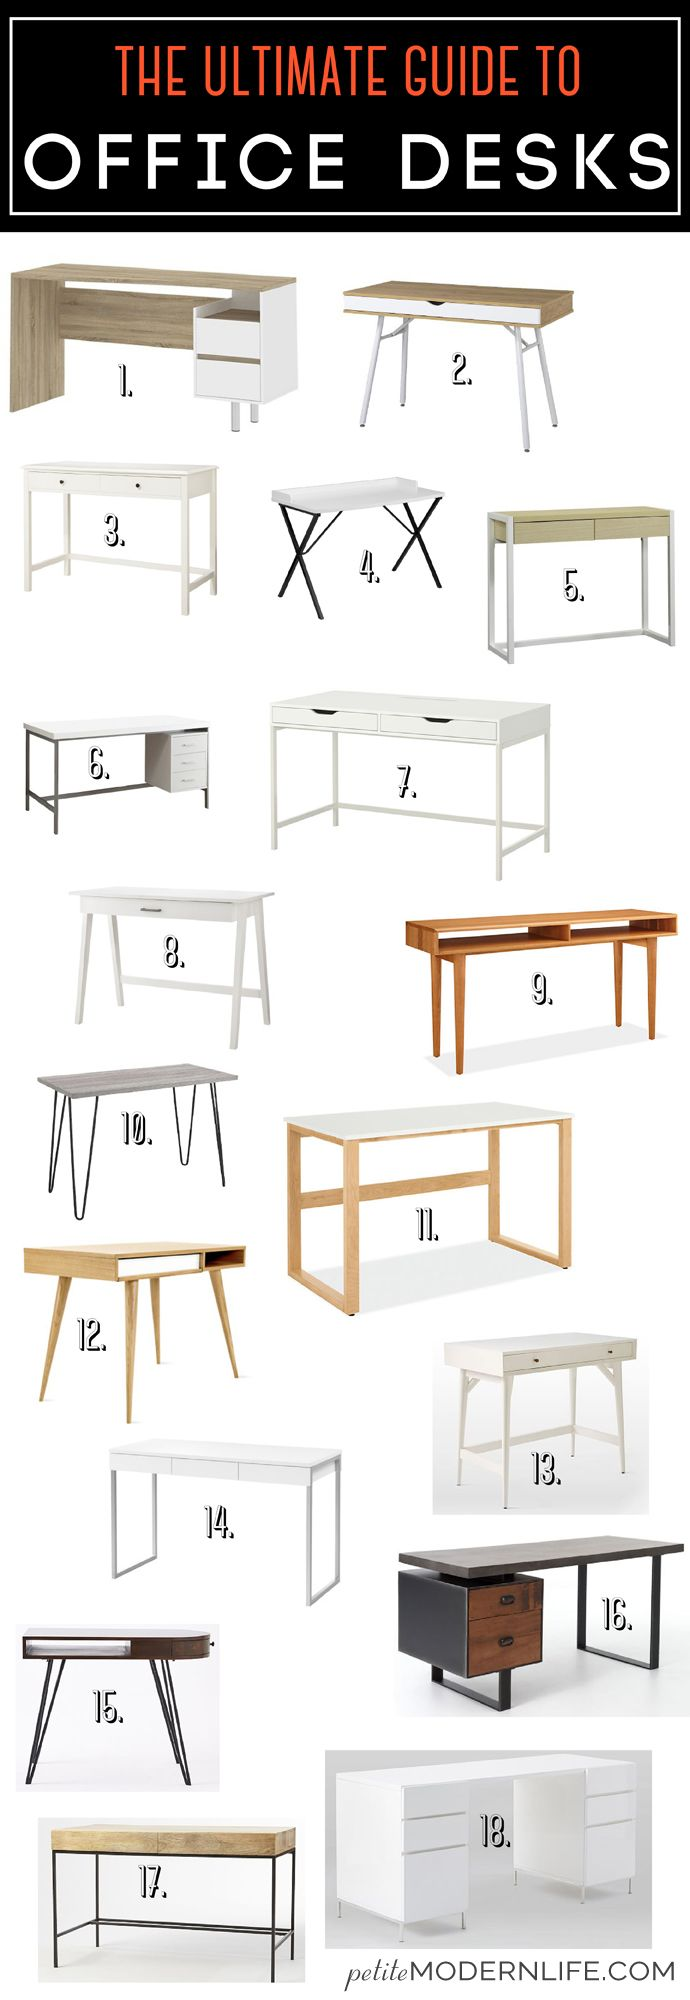 The Ultimate Guide to Office Desks | Remodelaholic ...